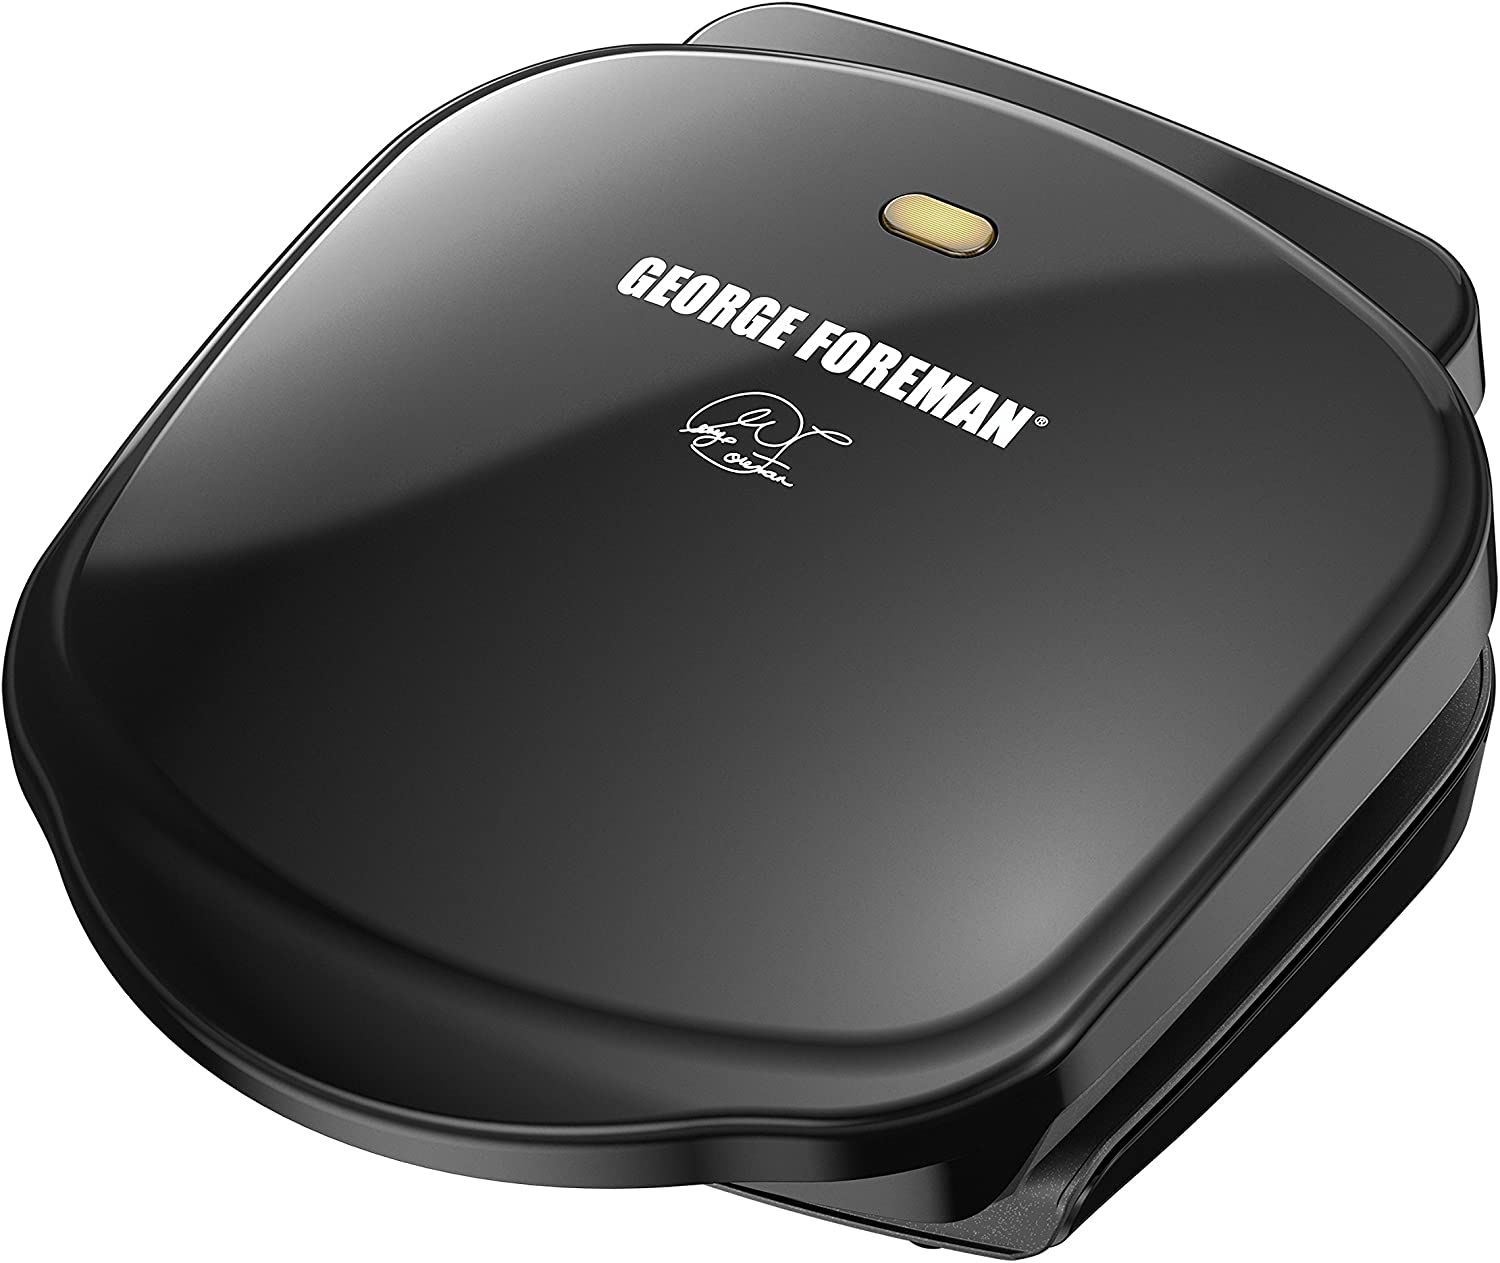 George Foreman 2-Serving Grill